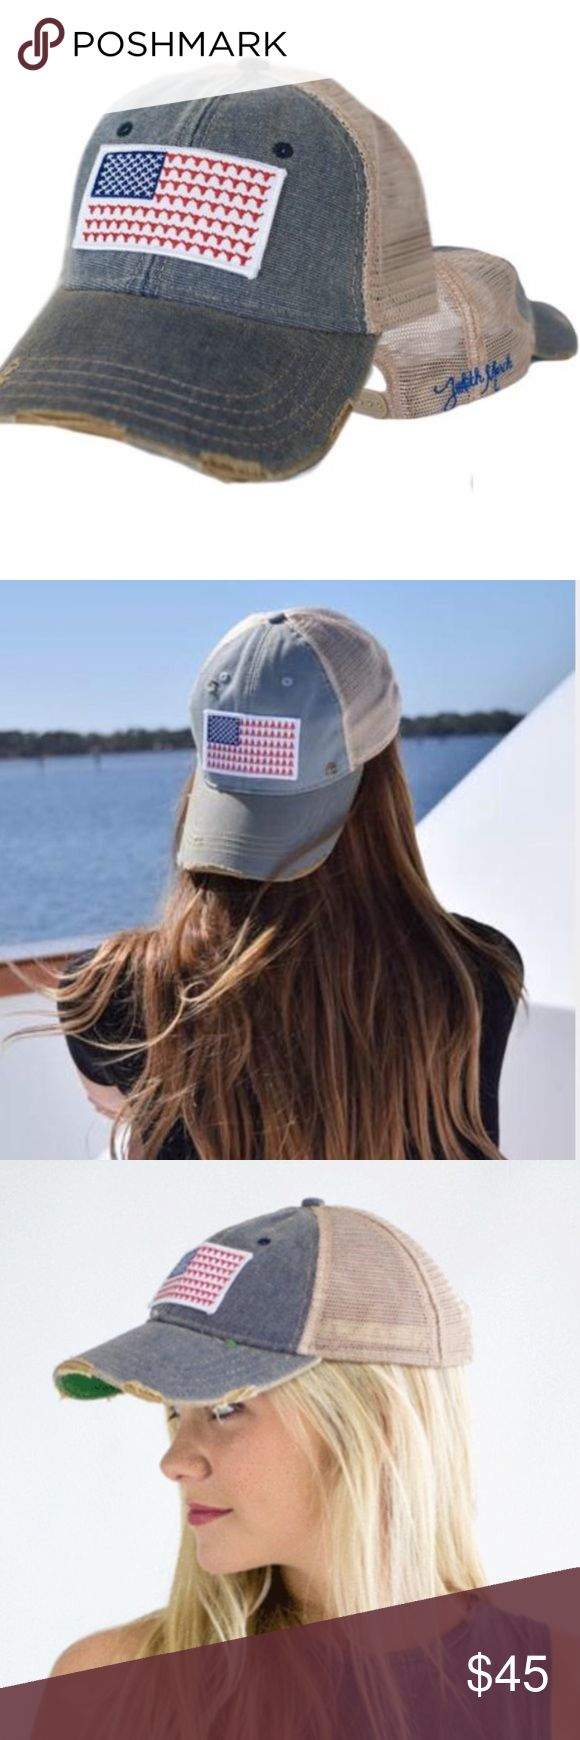 Judith March Flag Hat Steerhead Red Blue SnapBack Super cute for 4th of July!  Authentic brand new Judith March Hat with Steerhead fag patch.  Americana America USA Merica Fourth of July Red White & Blue SnapBack Hat Baseball Cap Trucker Hat ❤️ Judith March Accessories Hats